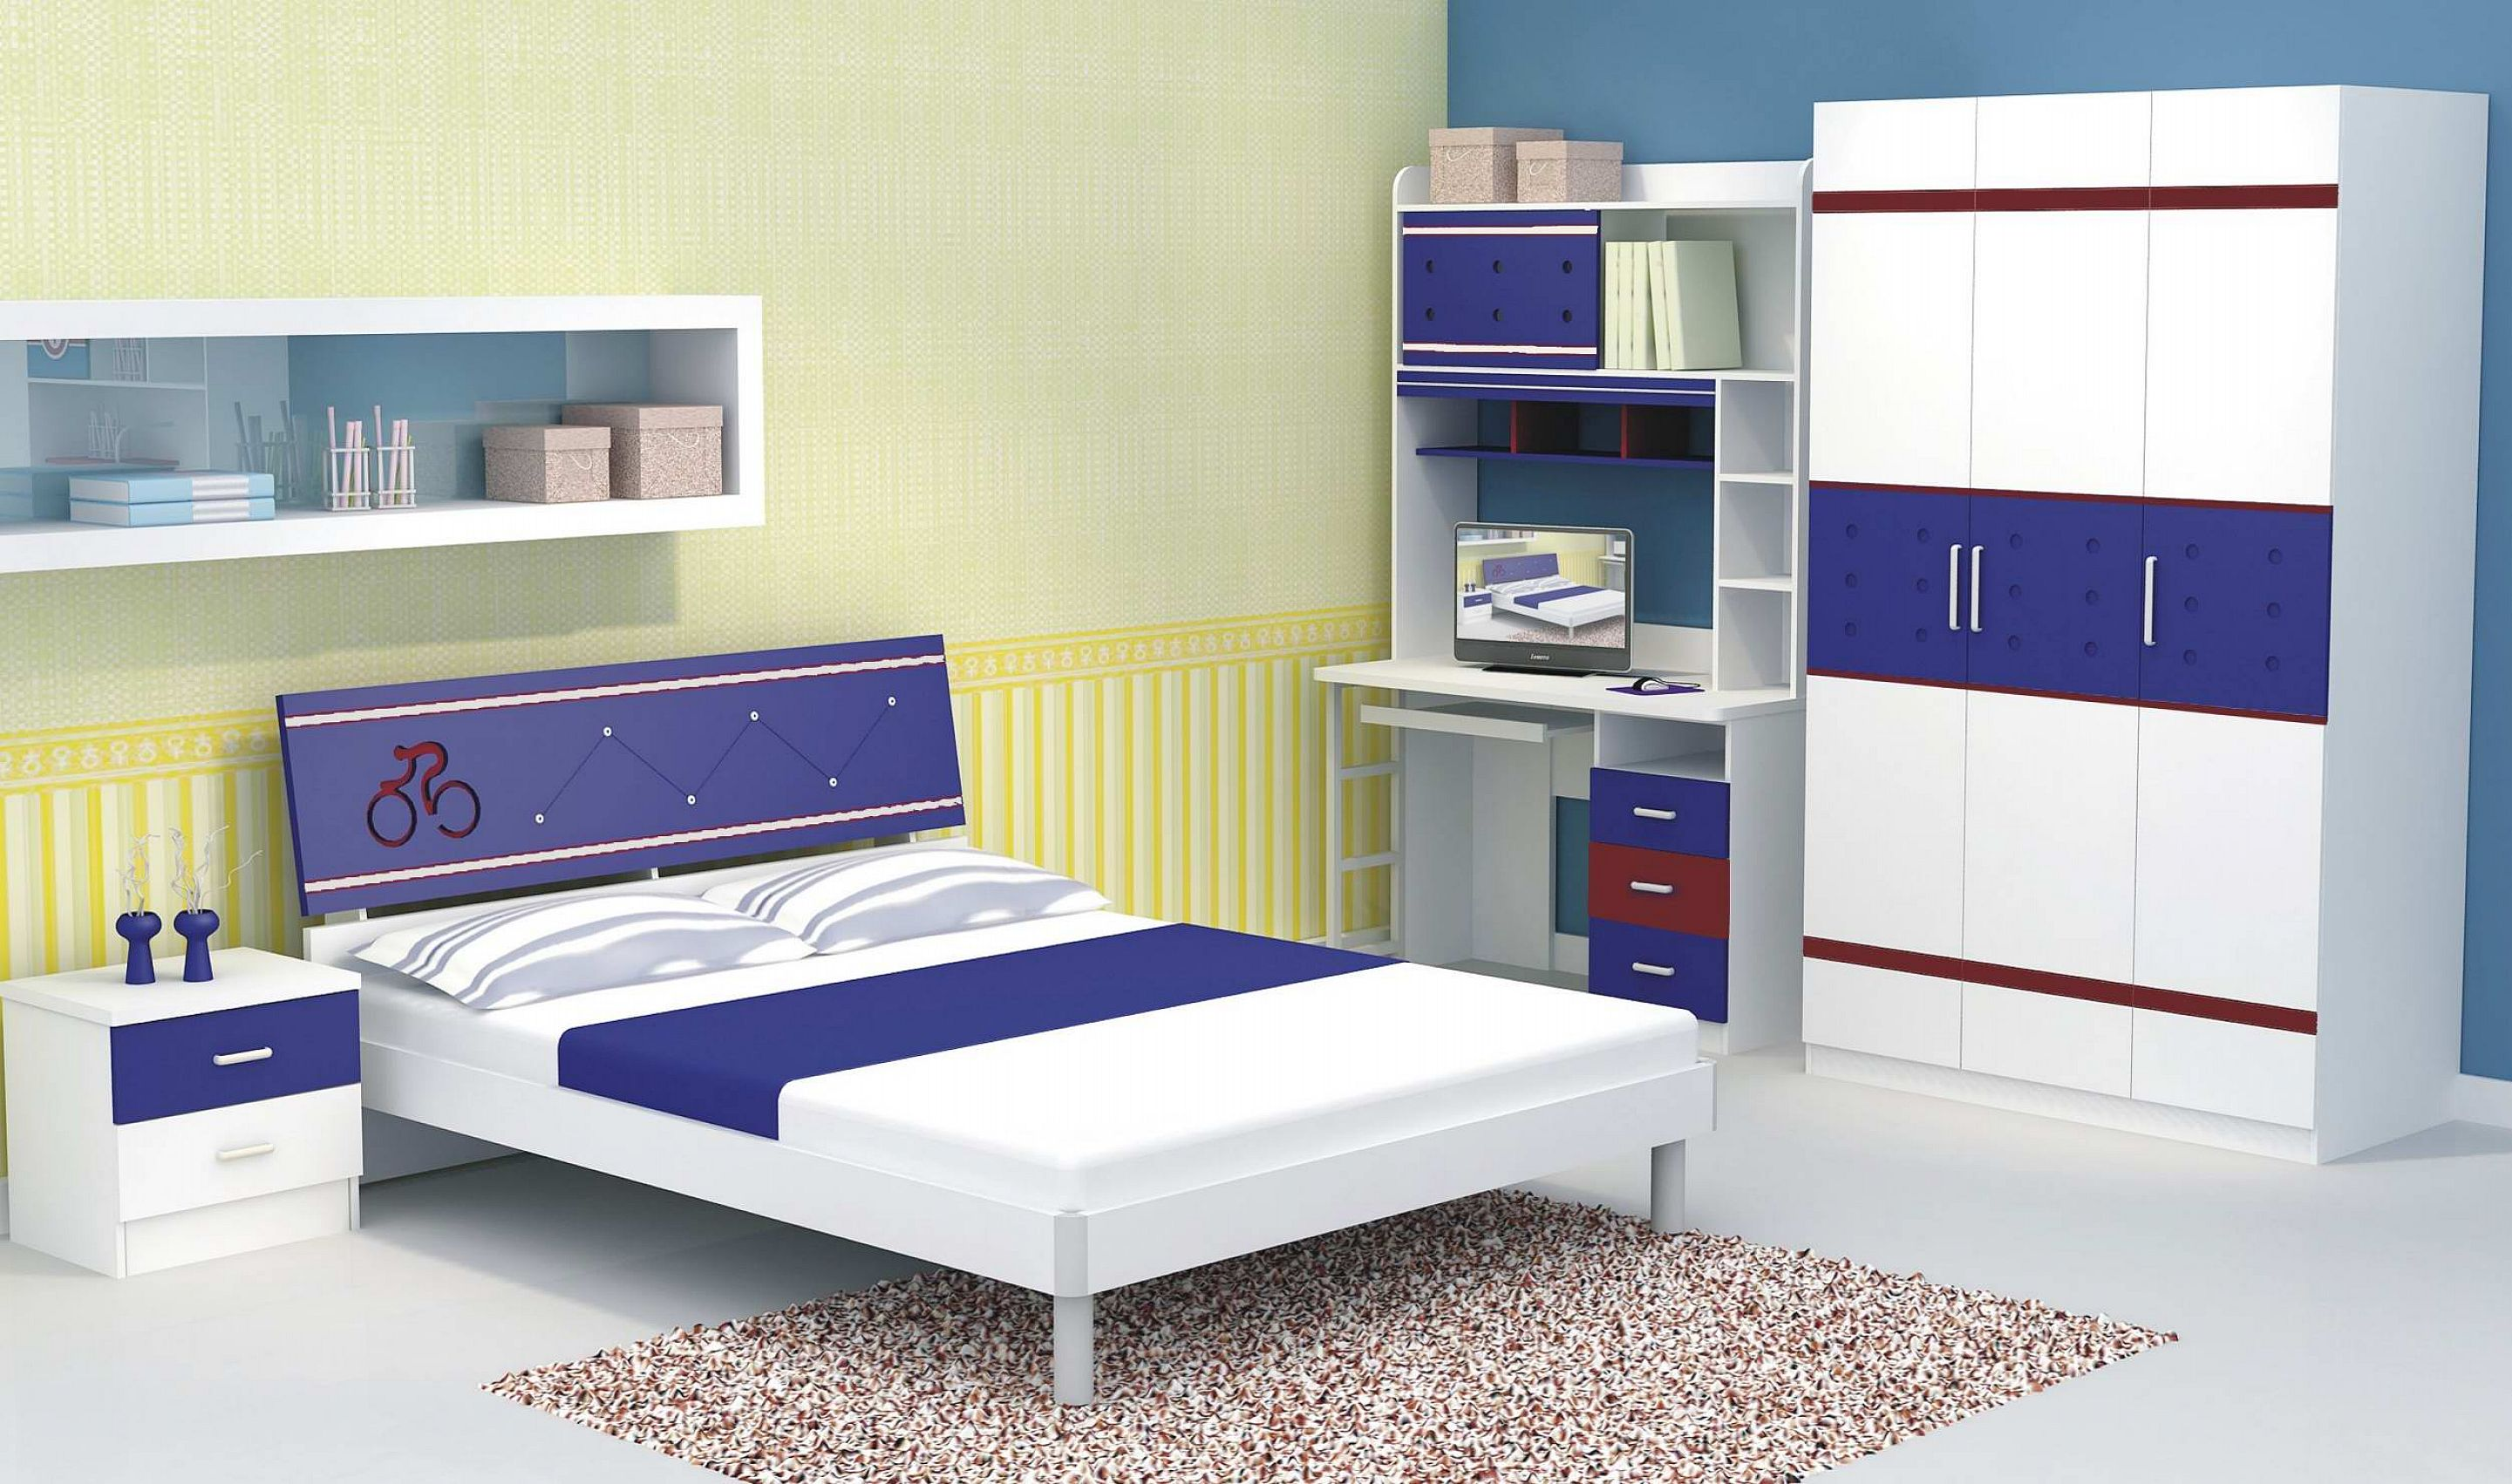 Solid Wood Bedroom Furniture For Kids 20 Tips For Best Quality Kid Bedroom Furniture Buying